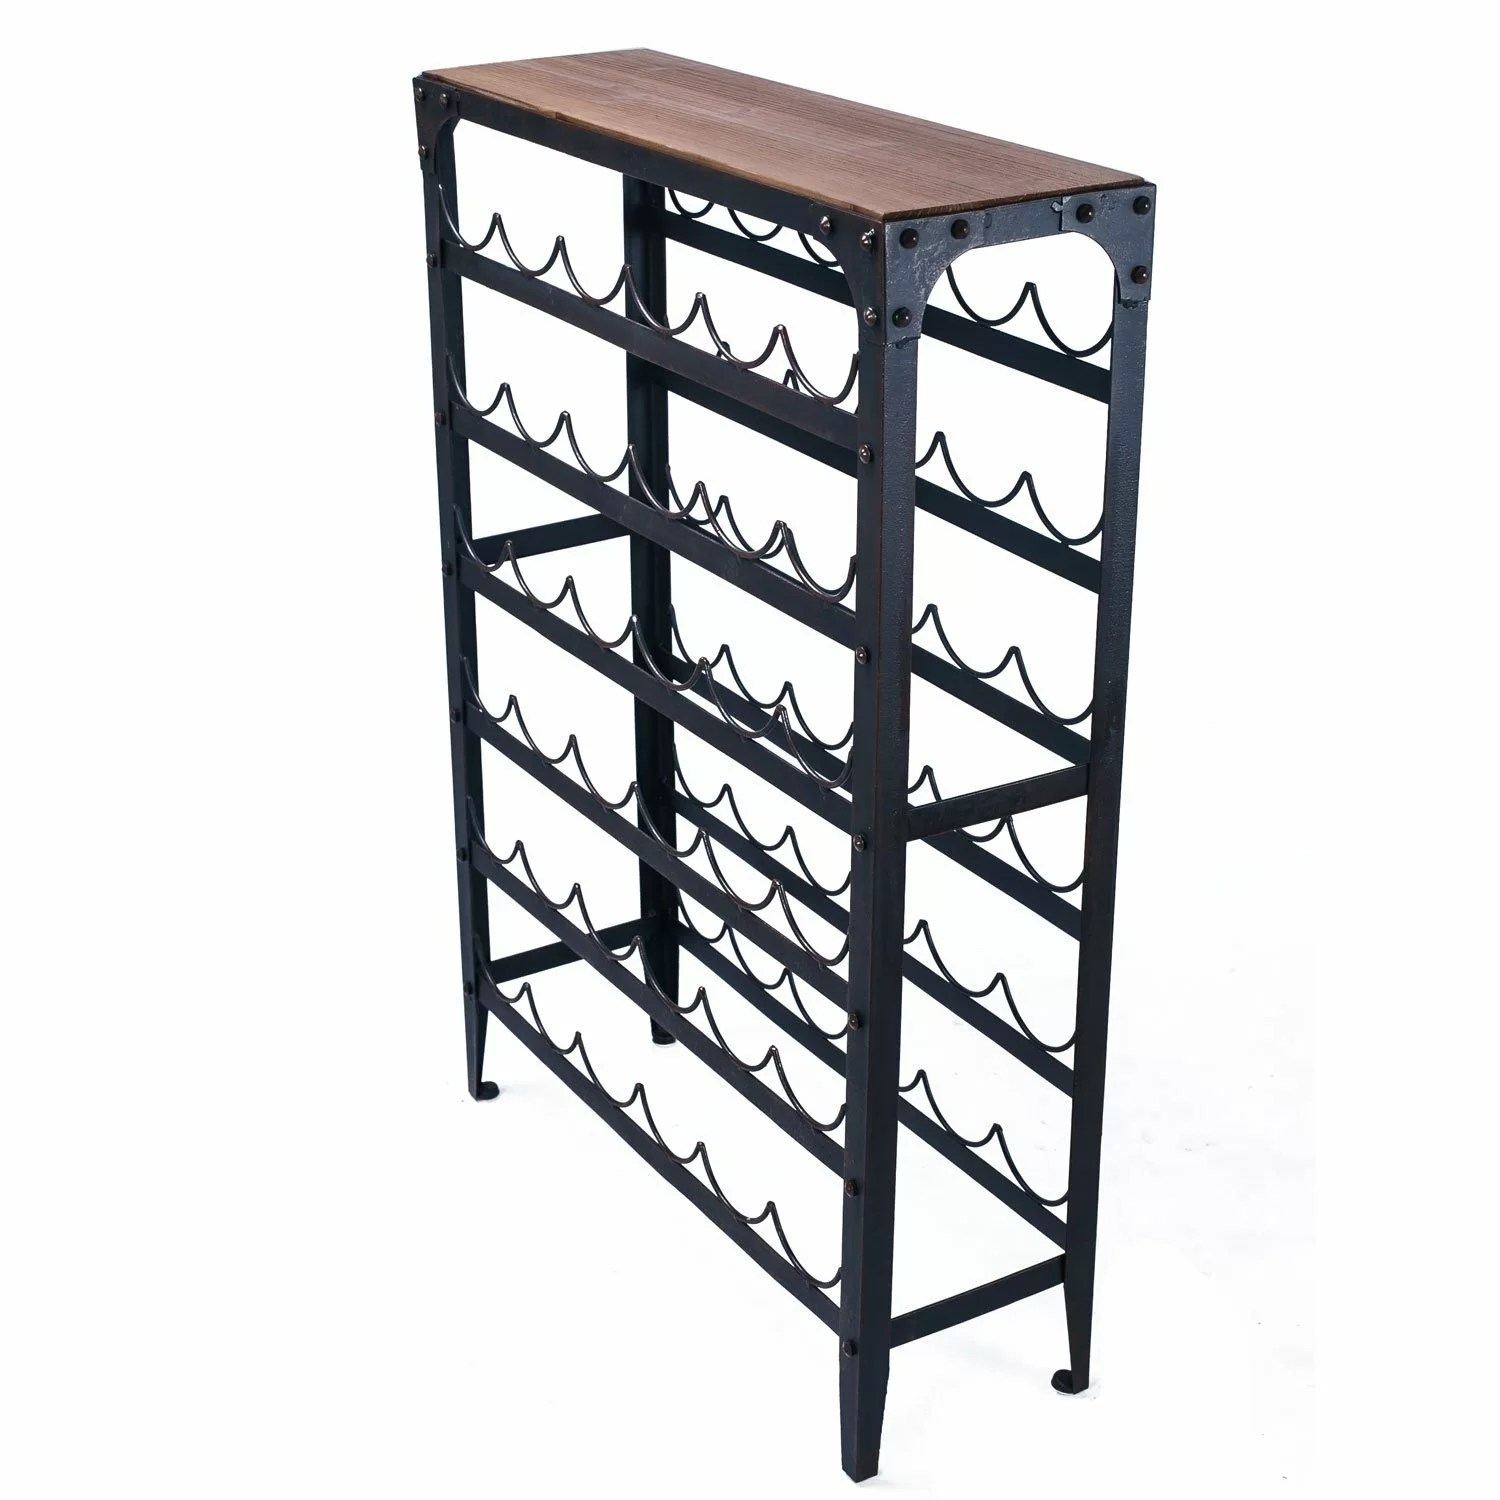 In Floor Wine Storage Adecotrading 36 Bottle Floor Wine Rack And Reviews Wayfair